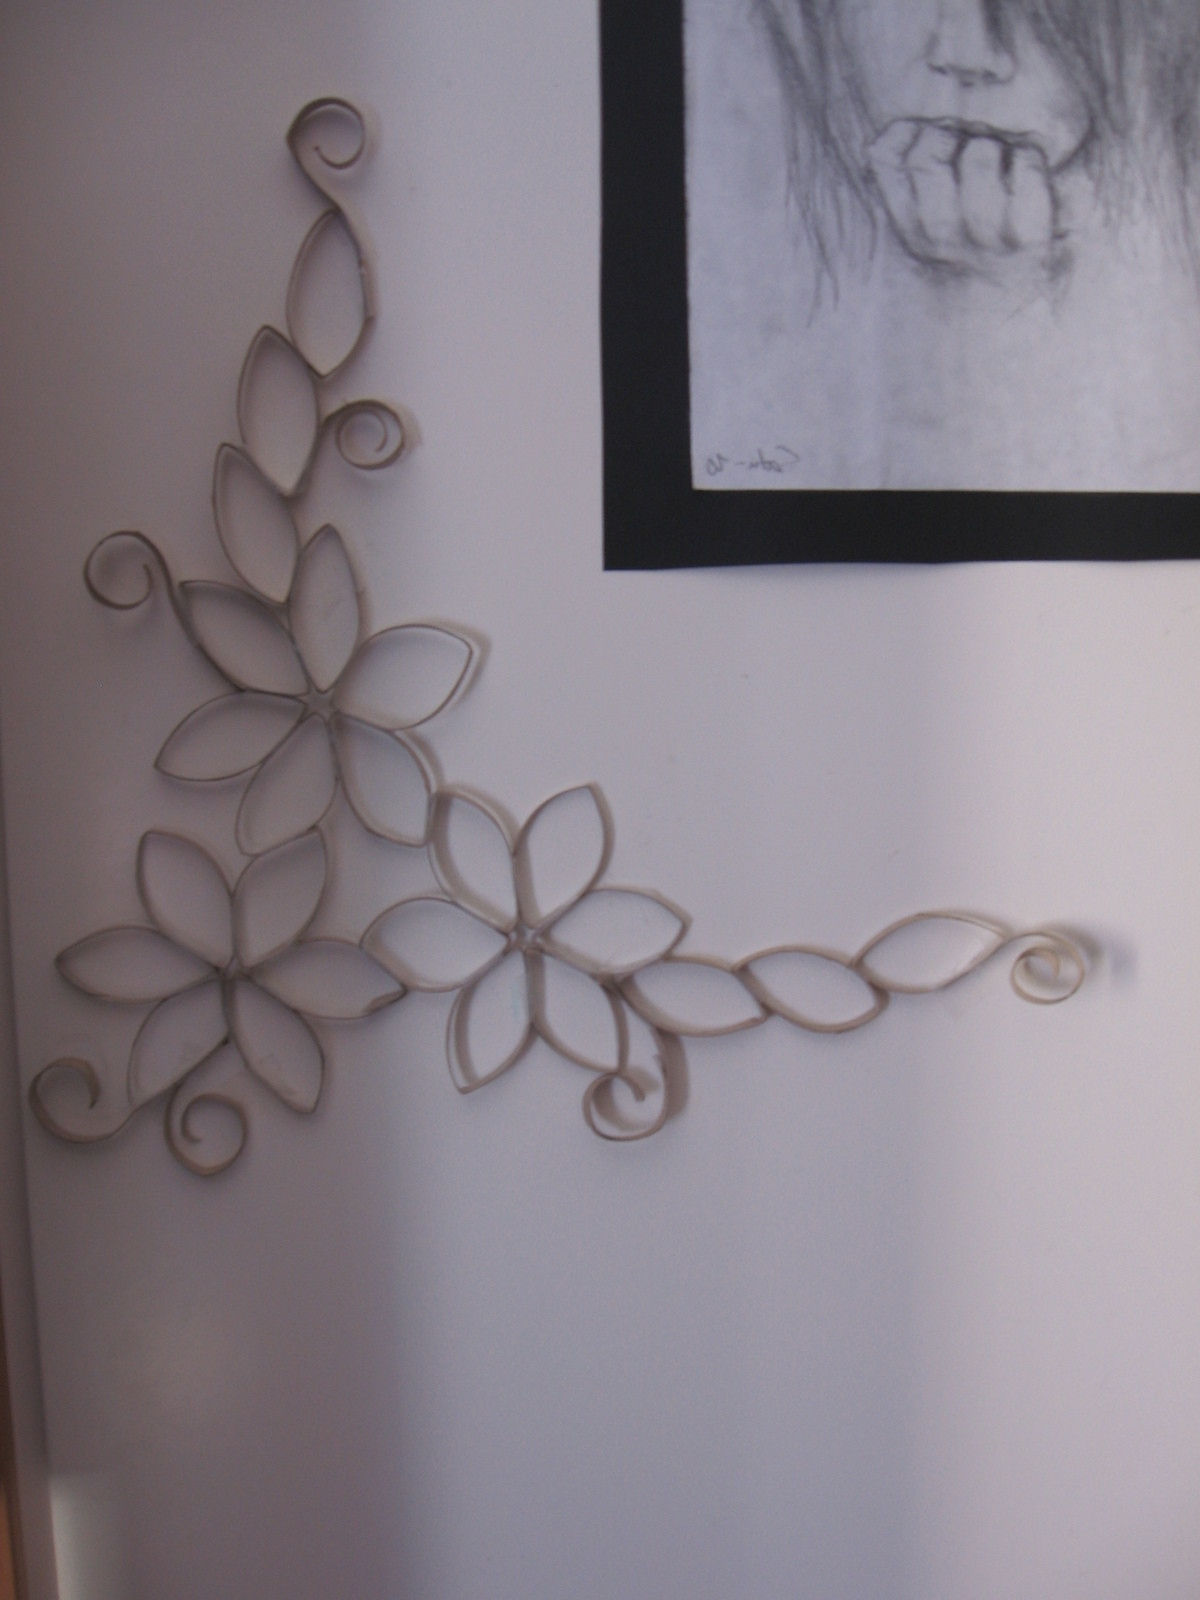 Well Liked Toilet Paper Roll Wall Art In Toilet Paper Roll Wall Art · A Paper Roll Model · No Sew On Cut Out (View 15 of 15)